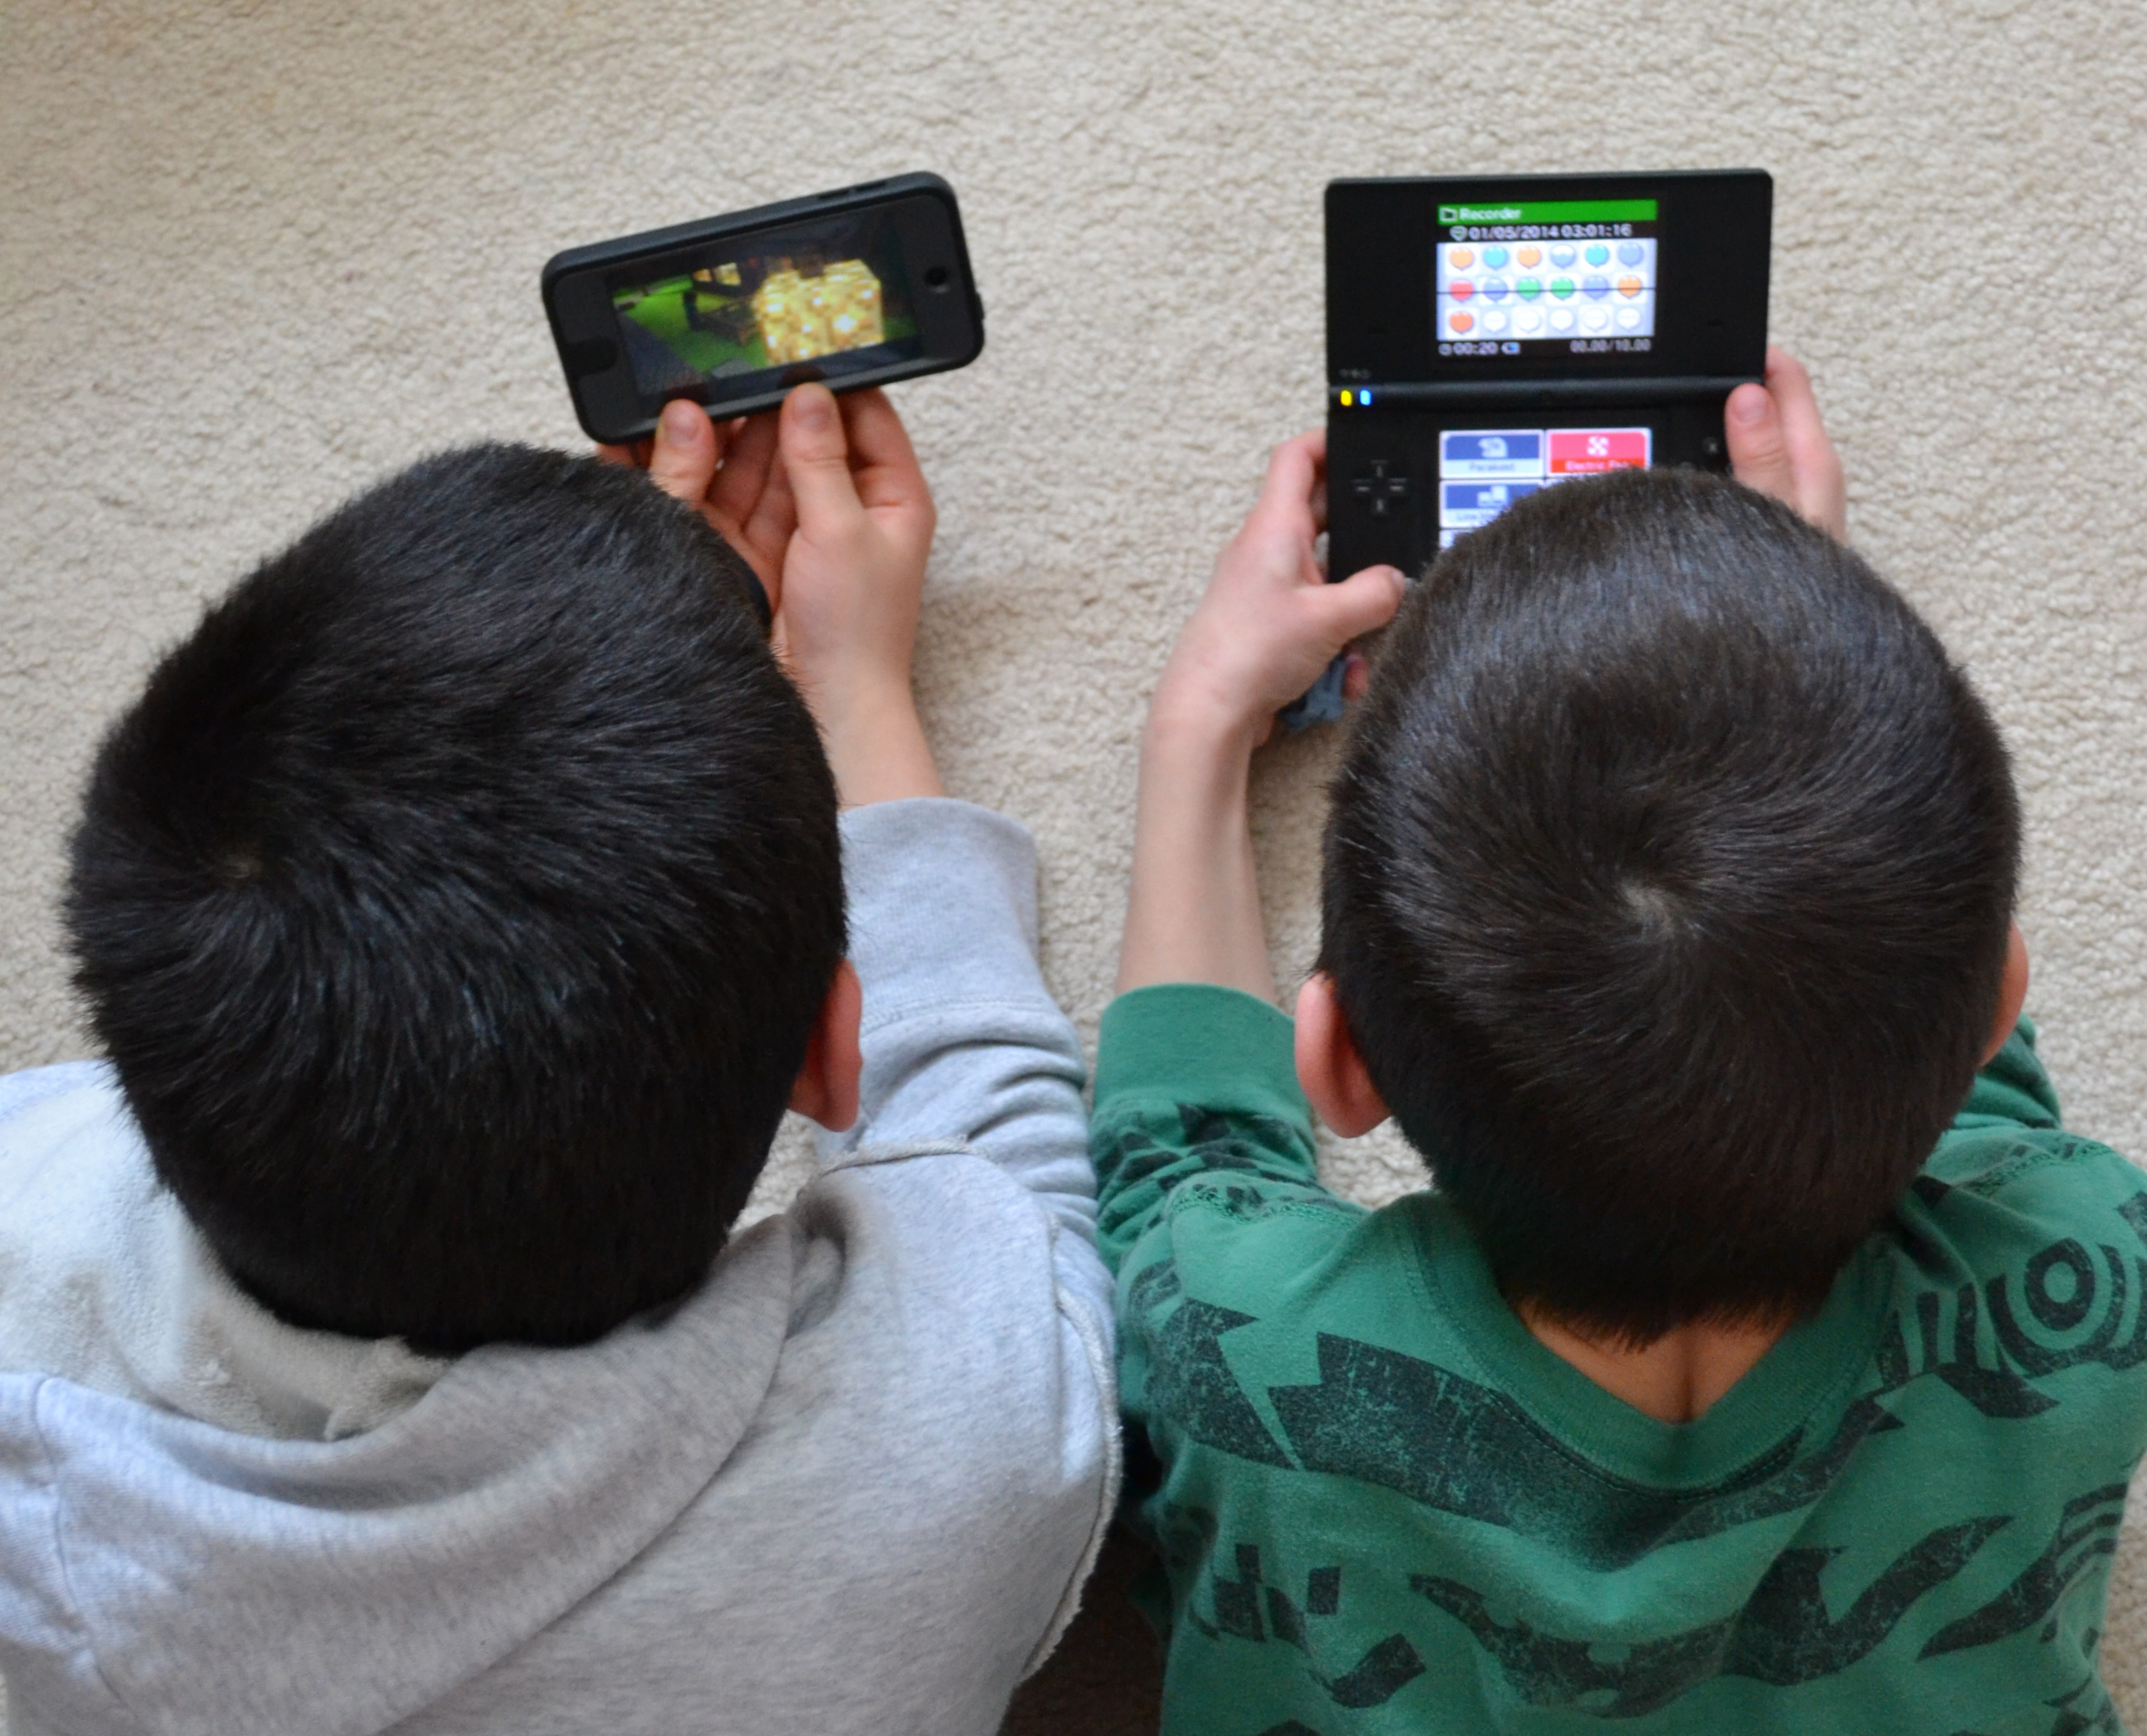 two boys holding handheld devices